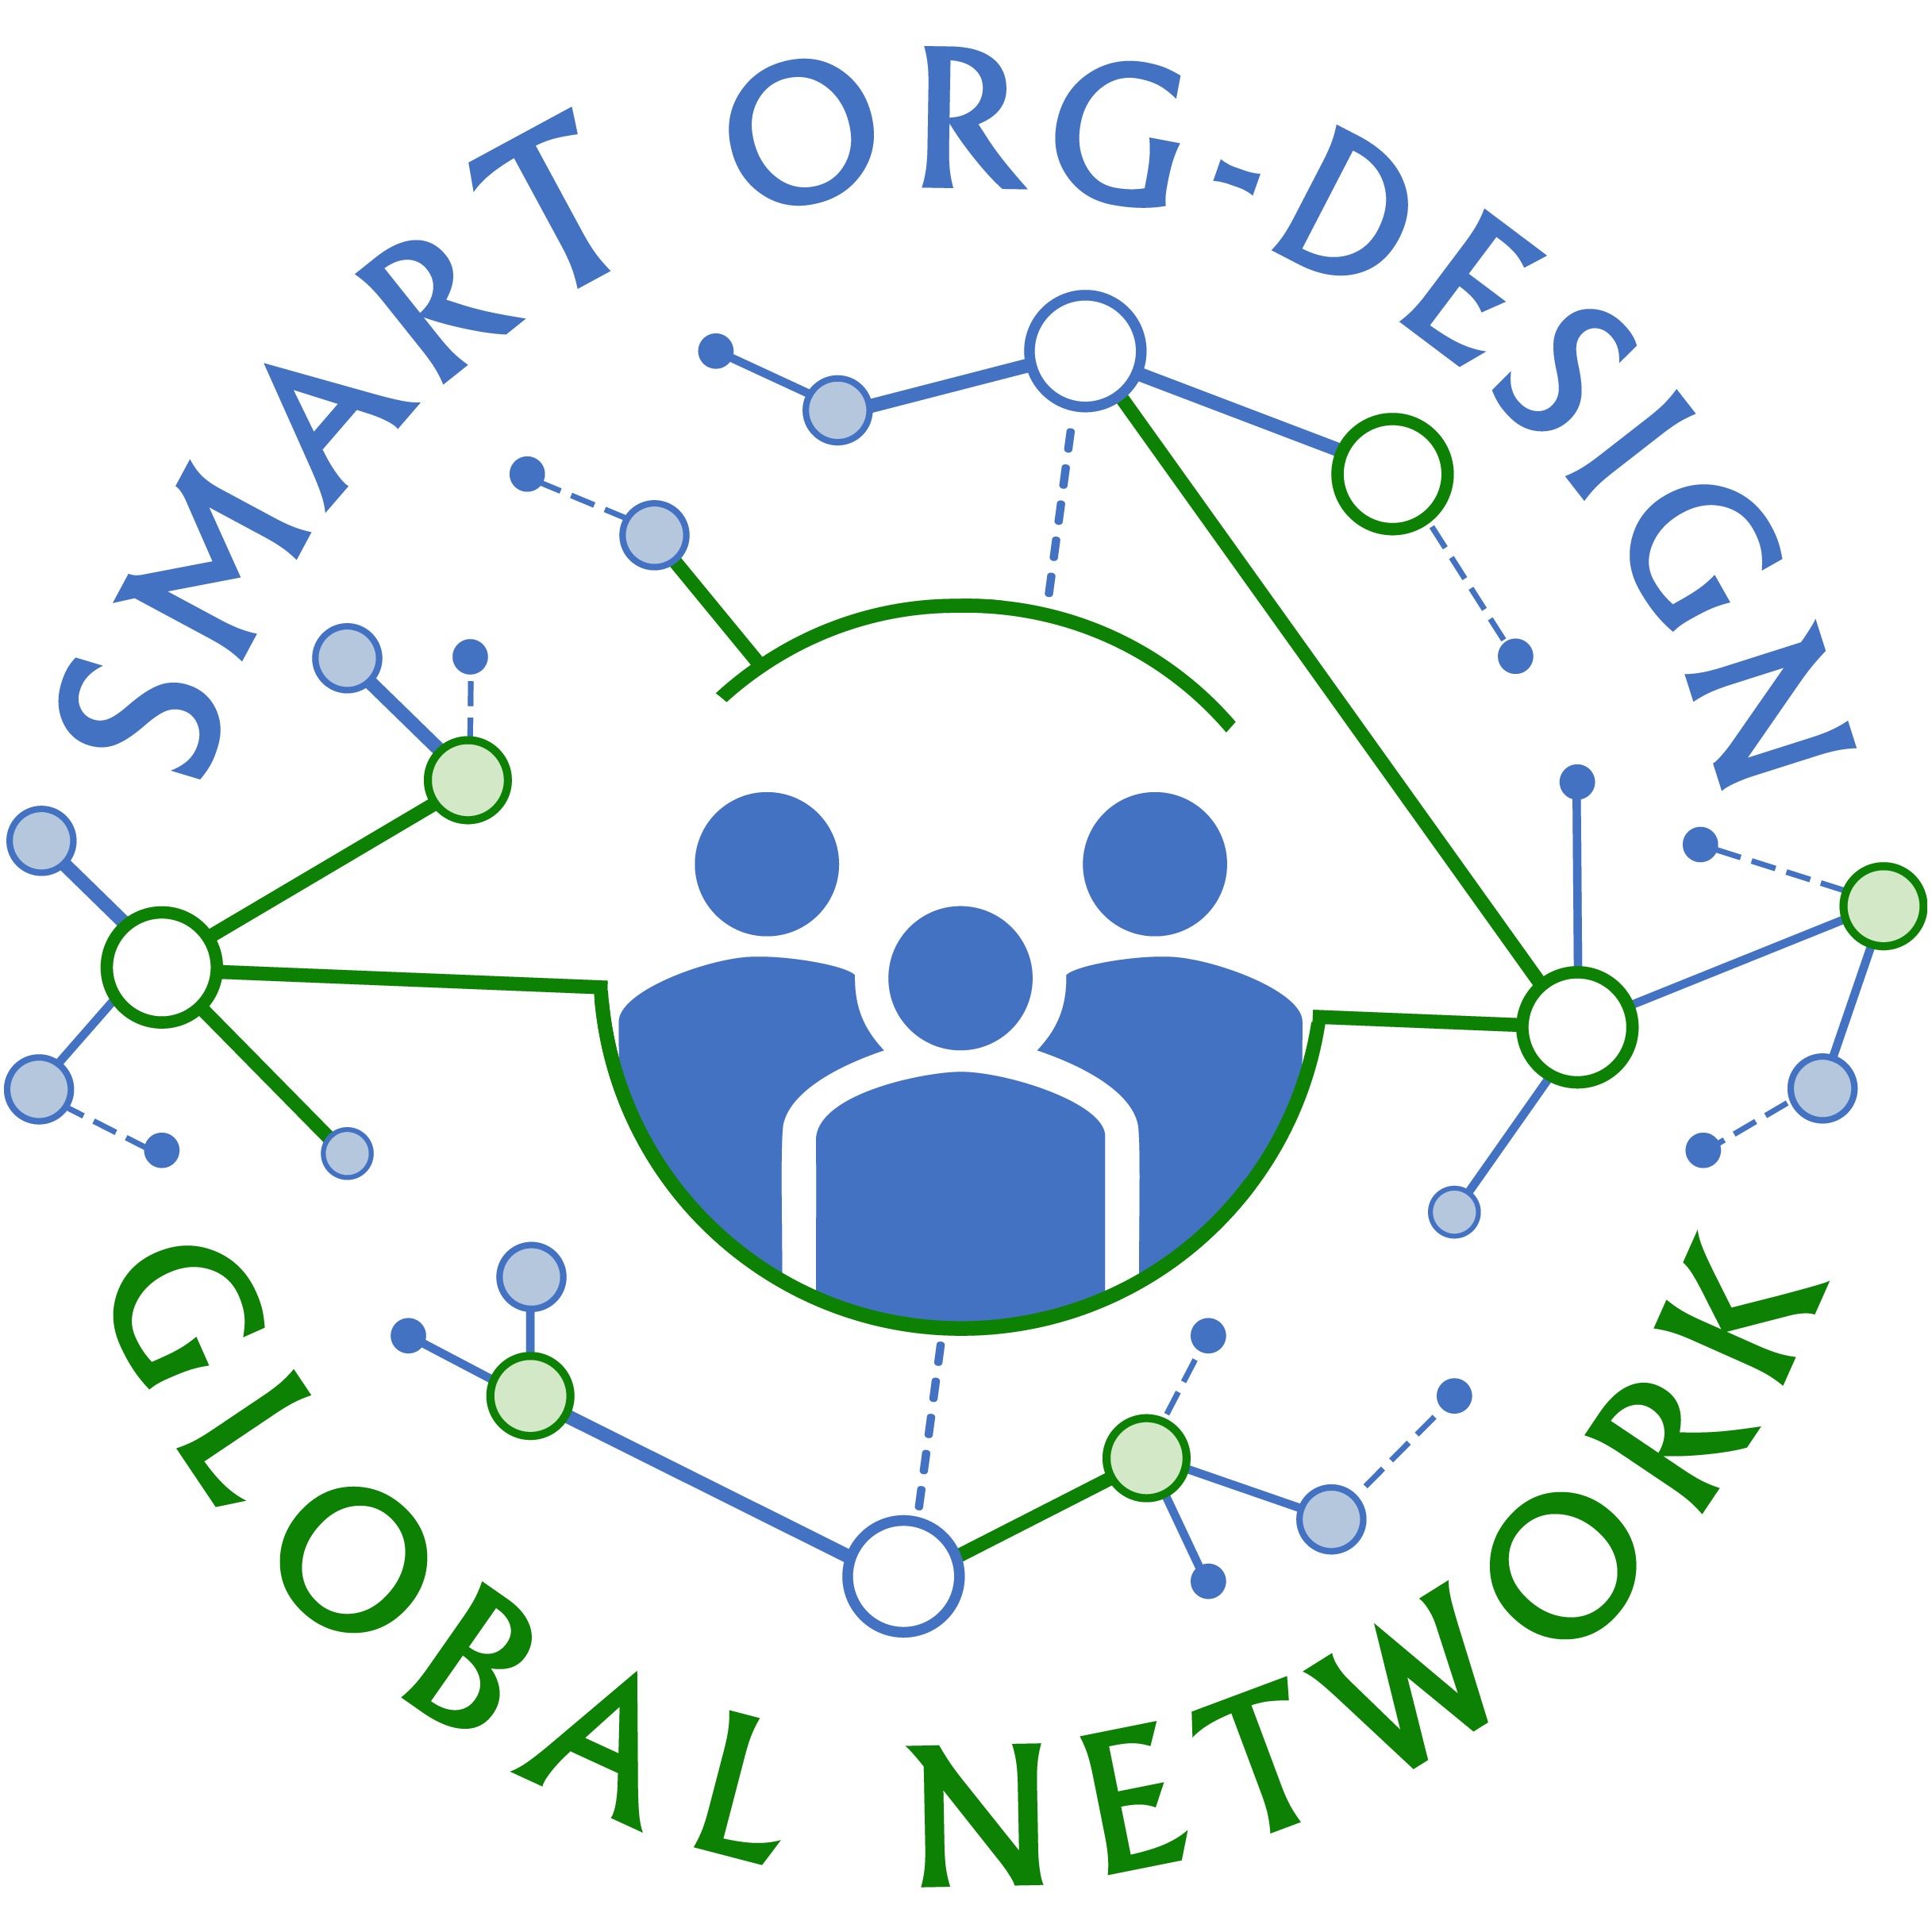 Global Network for Organizational Design